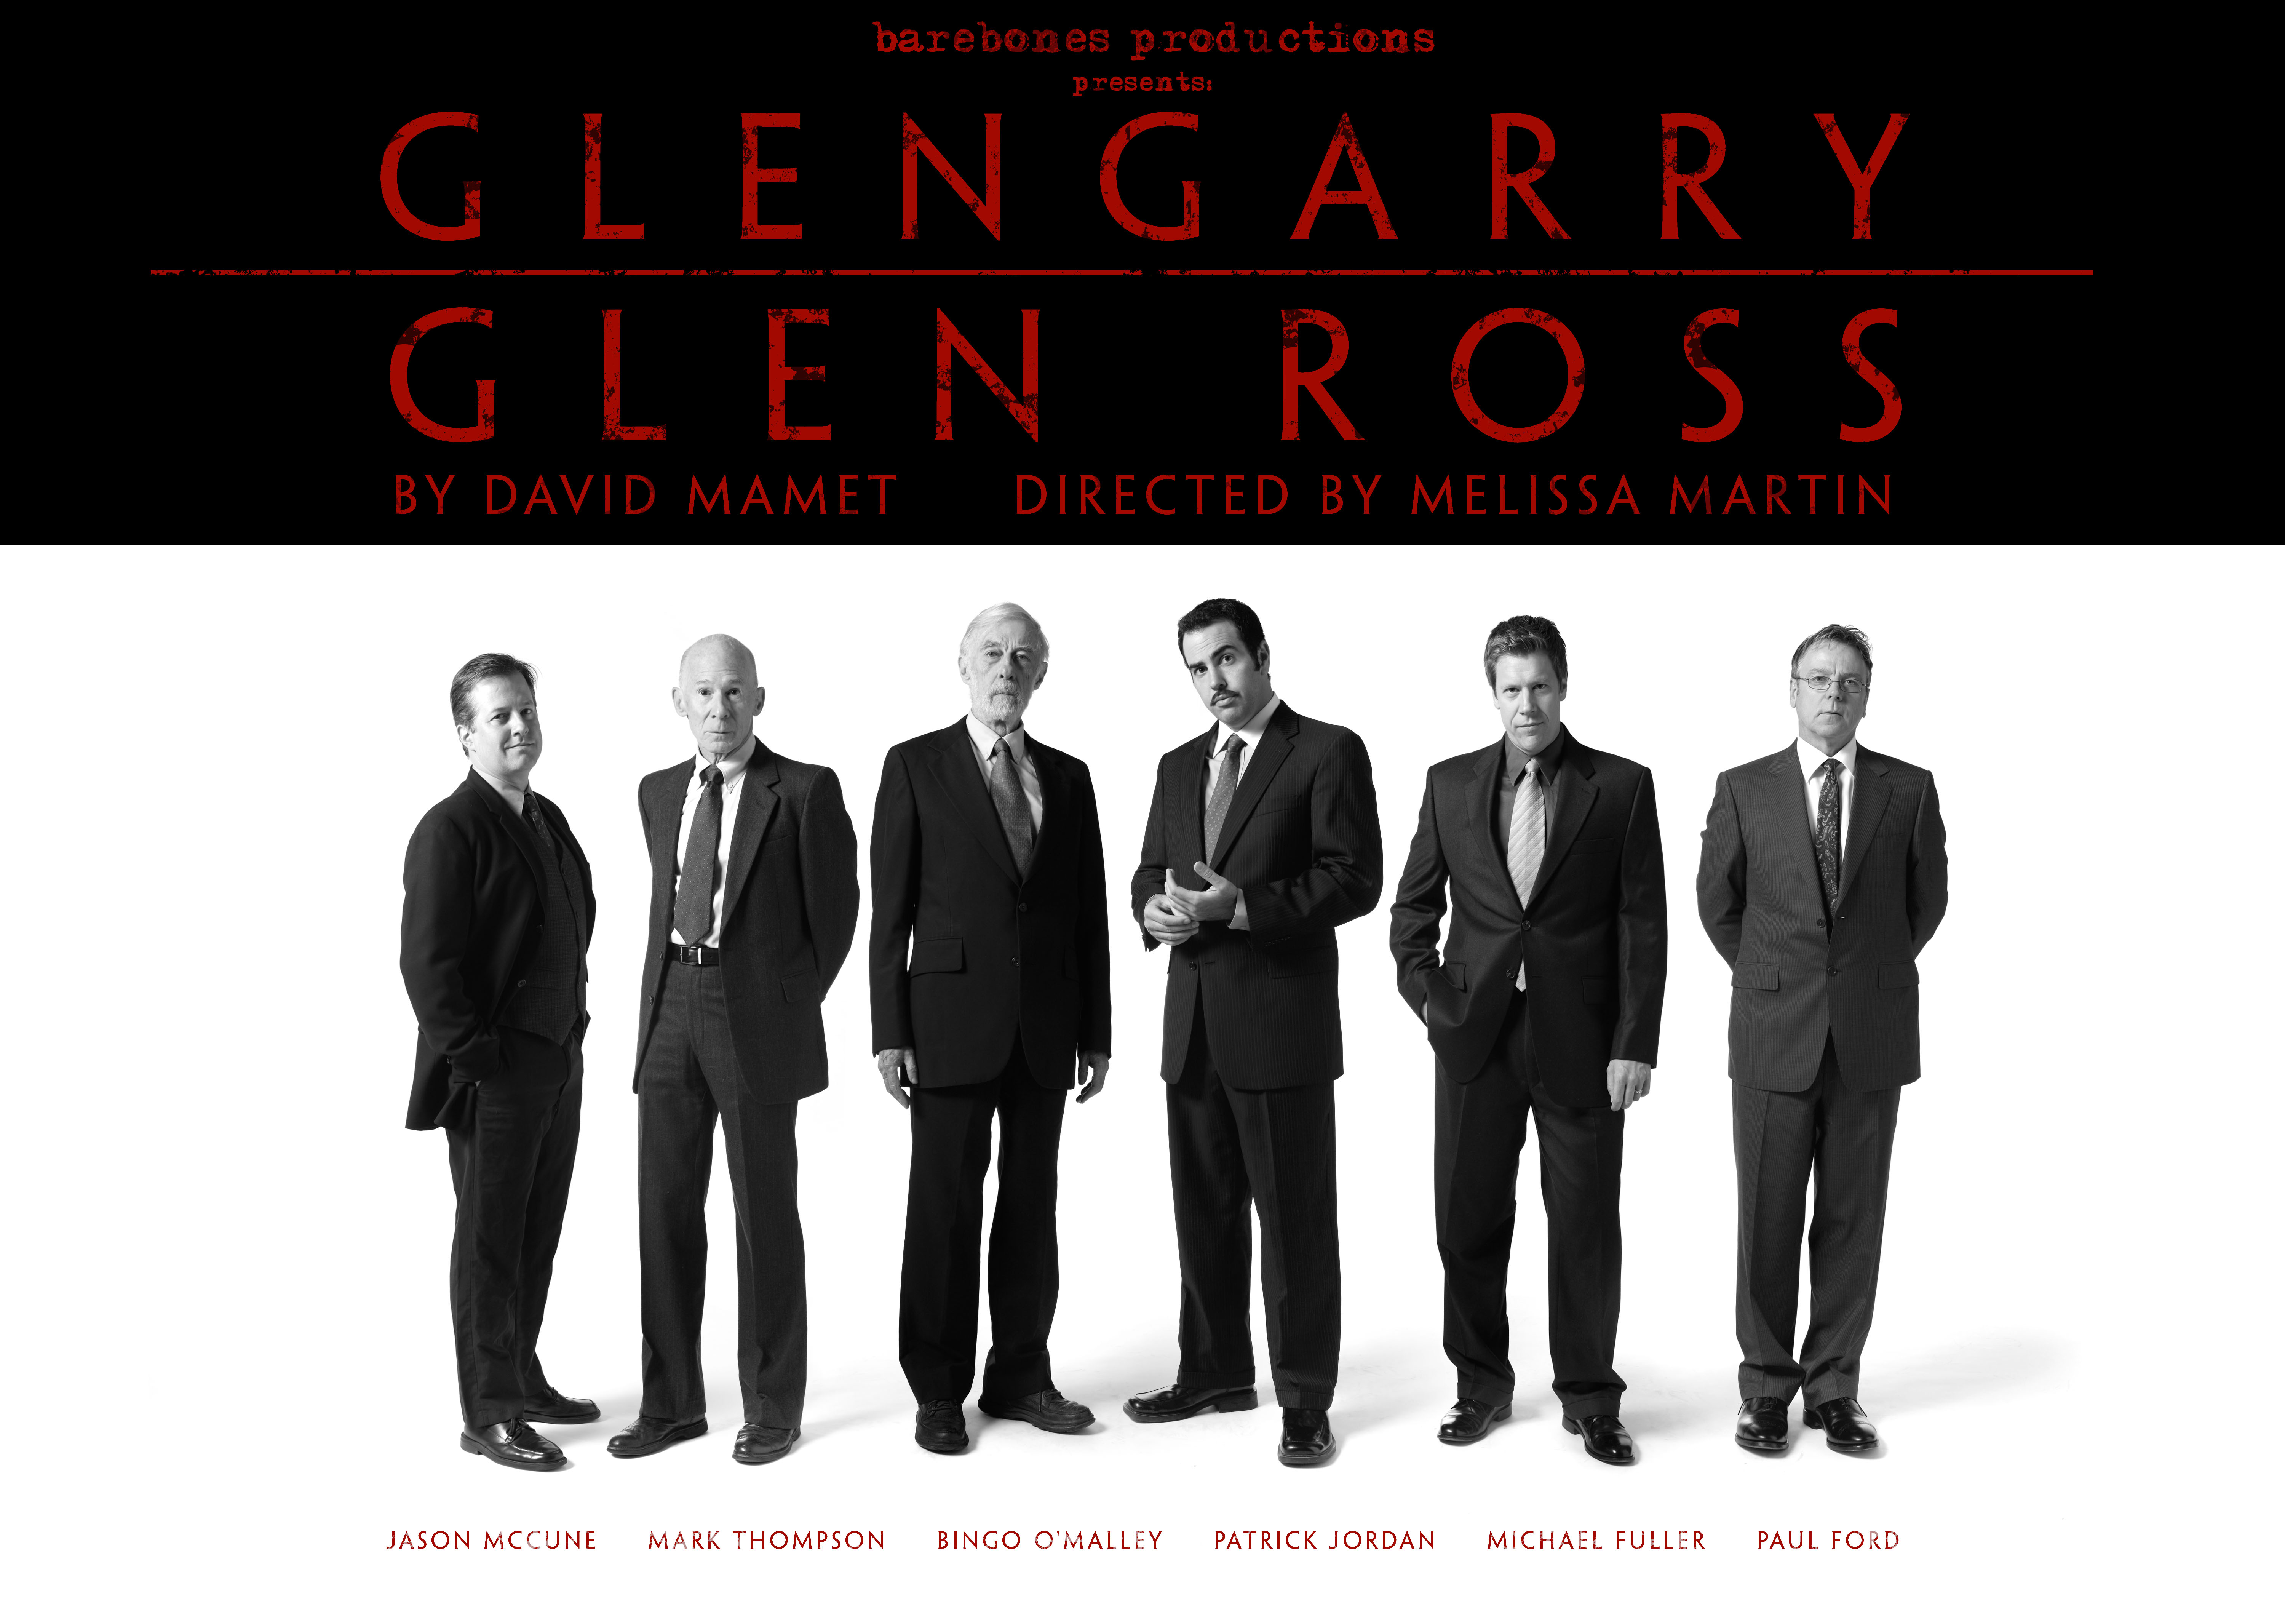 comparison glengarry glen ross and bartleby Ninth track of the hooray for boobies (us version) (lp) by bloodhound gang released in 29th february, 2000 (c) 2000 geffen records, inc lyrics by jimmy pop.